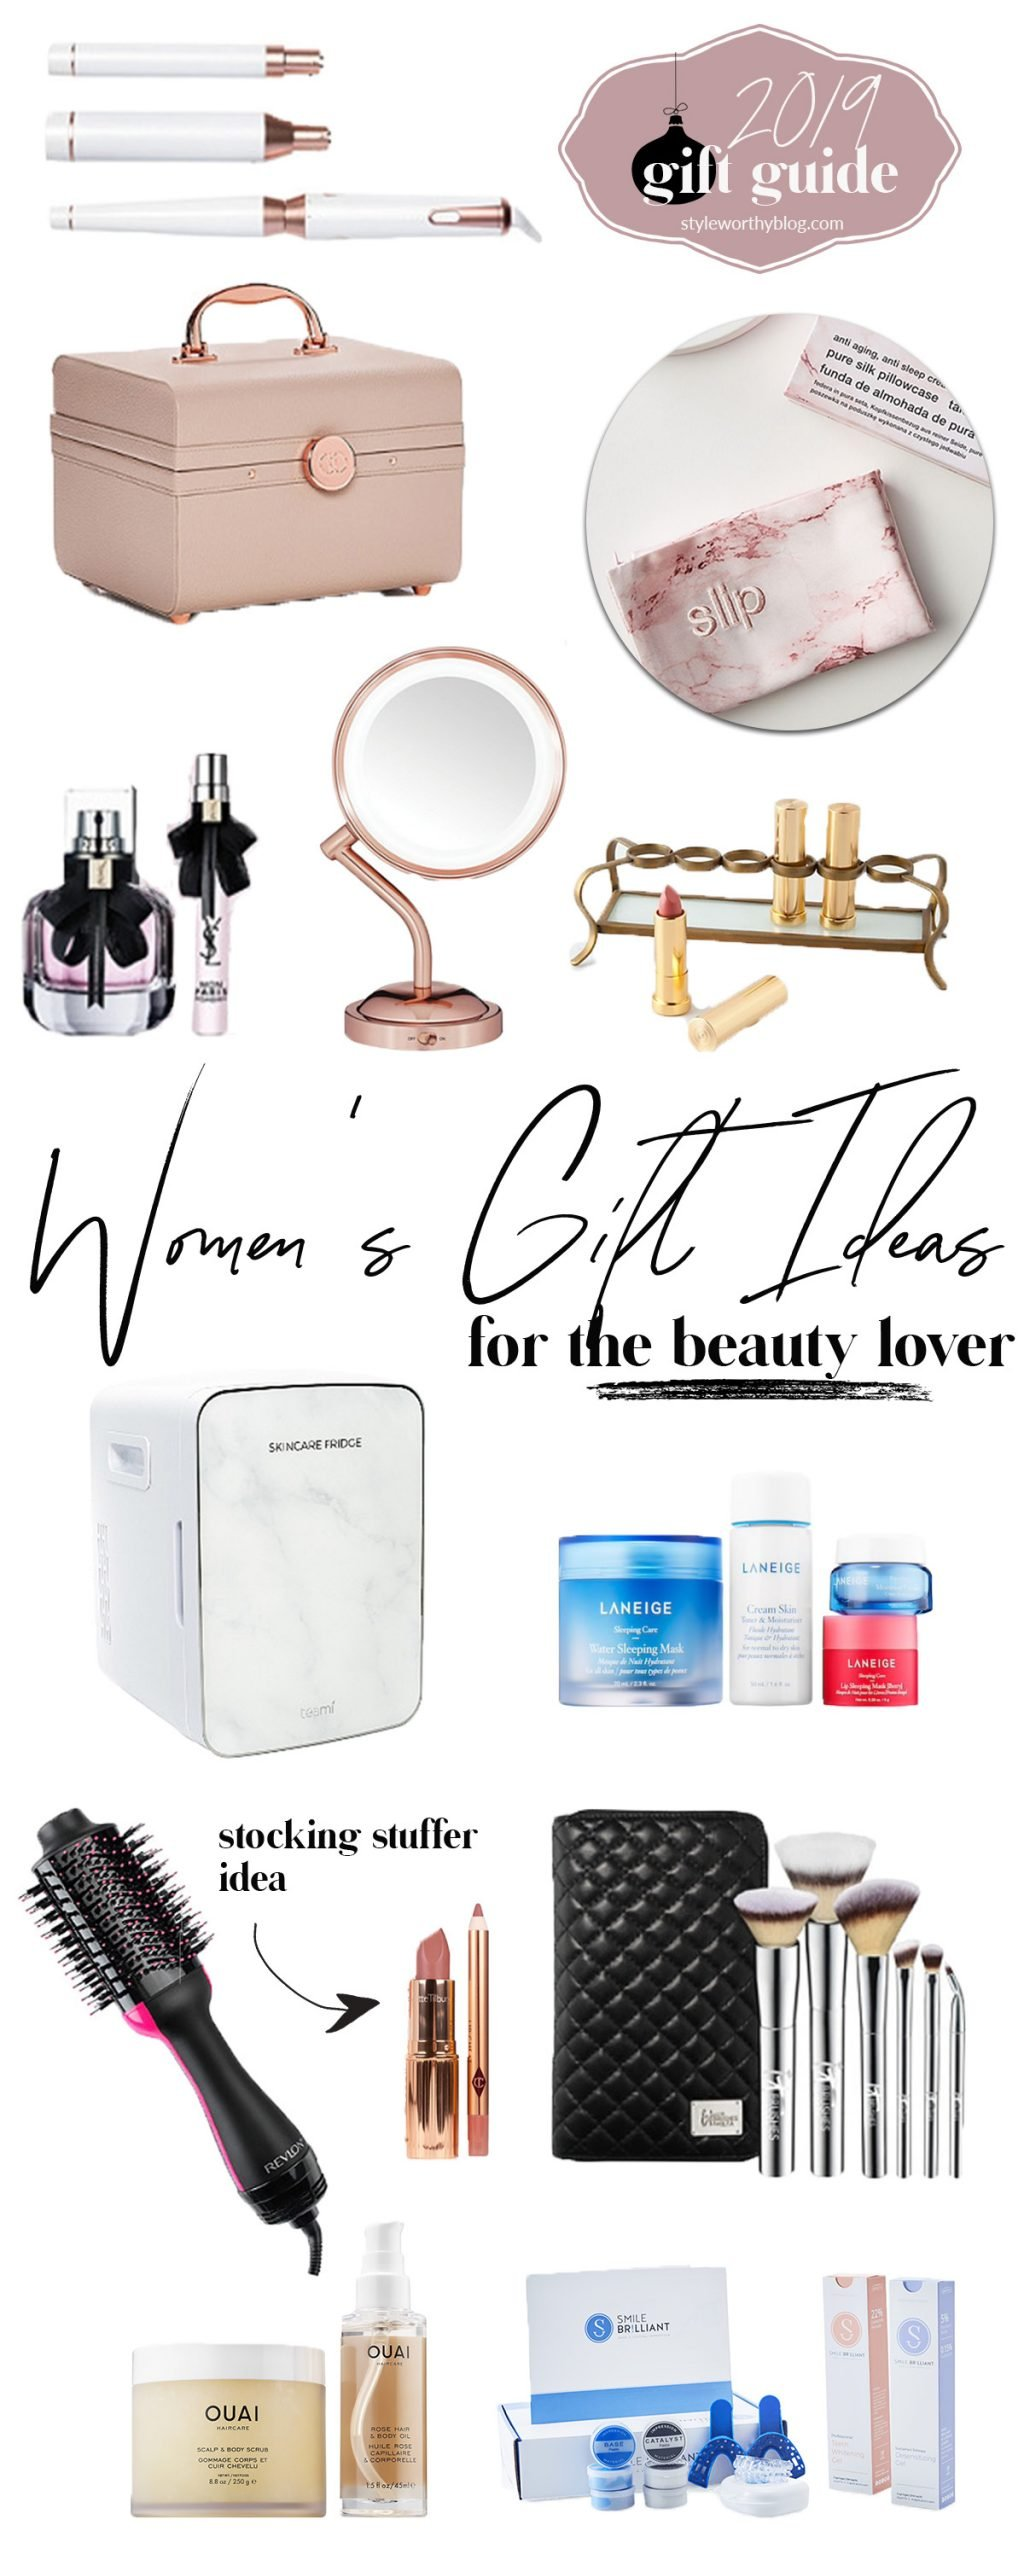 Women's gift guide. Gift ideas for the beauty lover